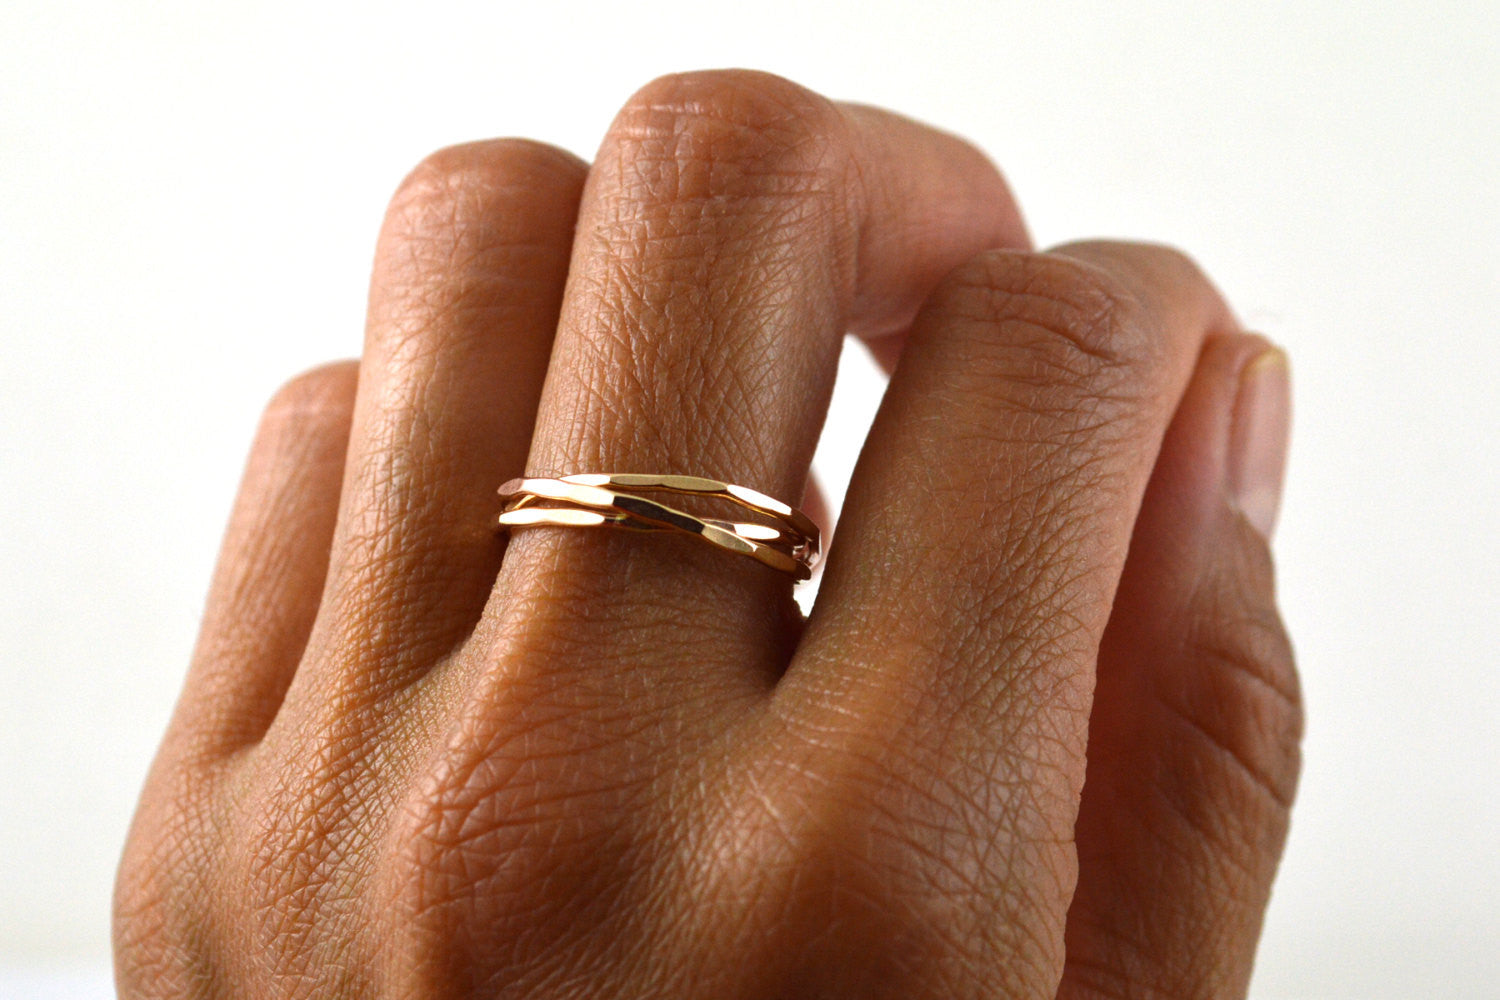 russian wedding ring in 14k gold filled - Russian Wedding Ring